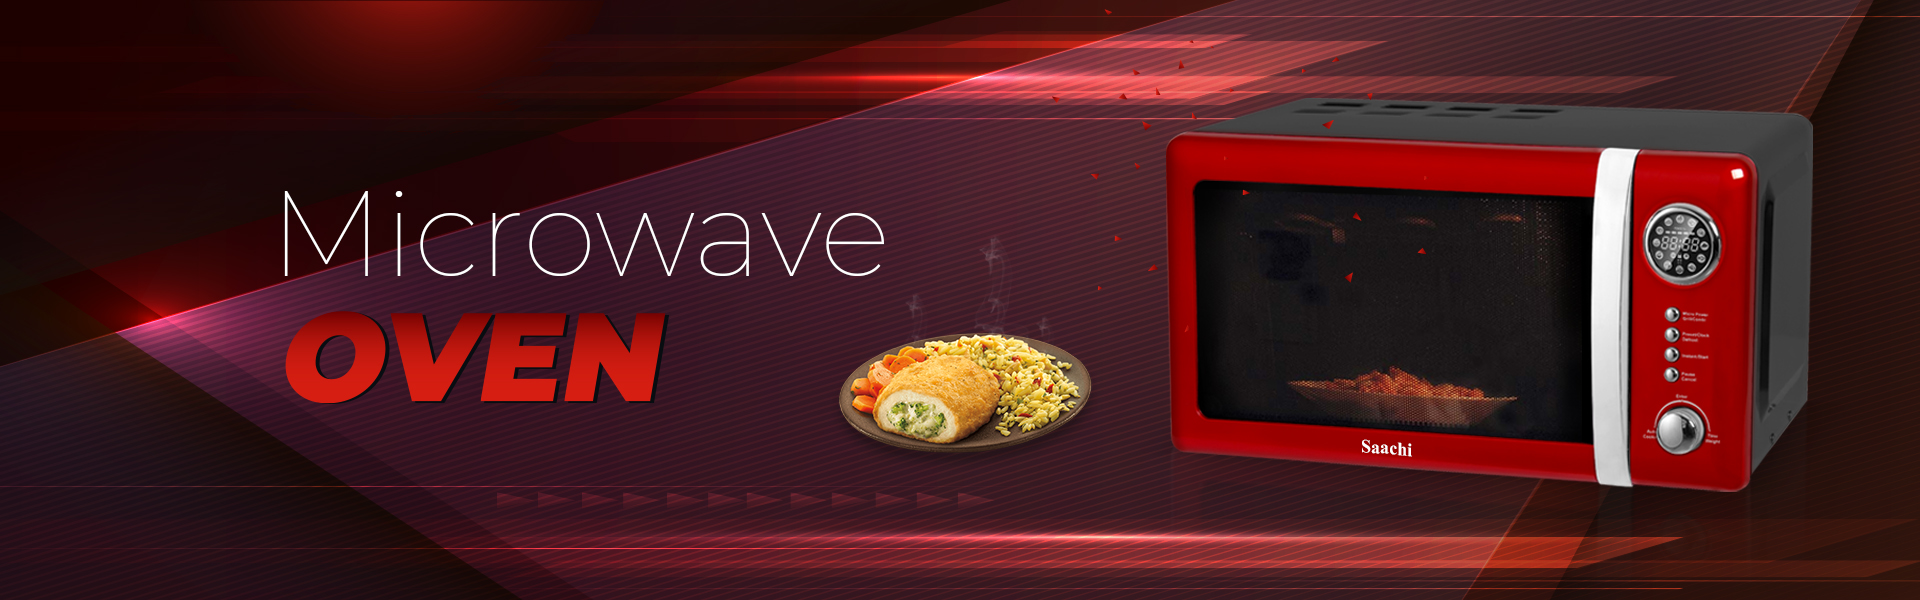 Microwave Oven_1920x600